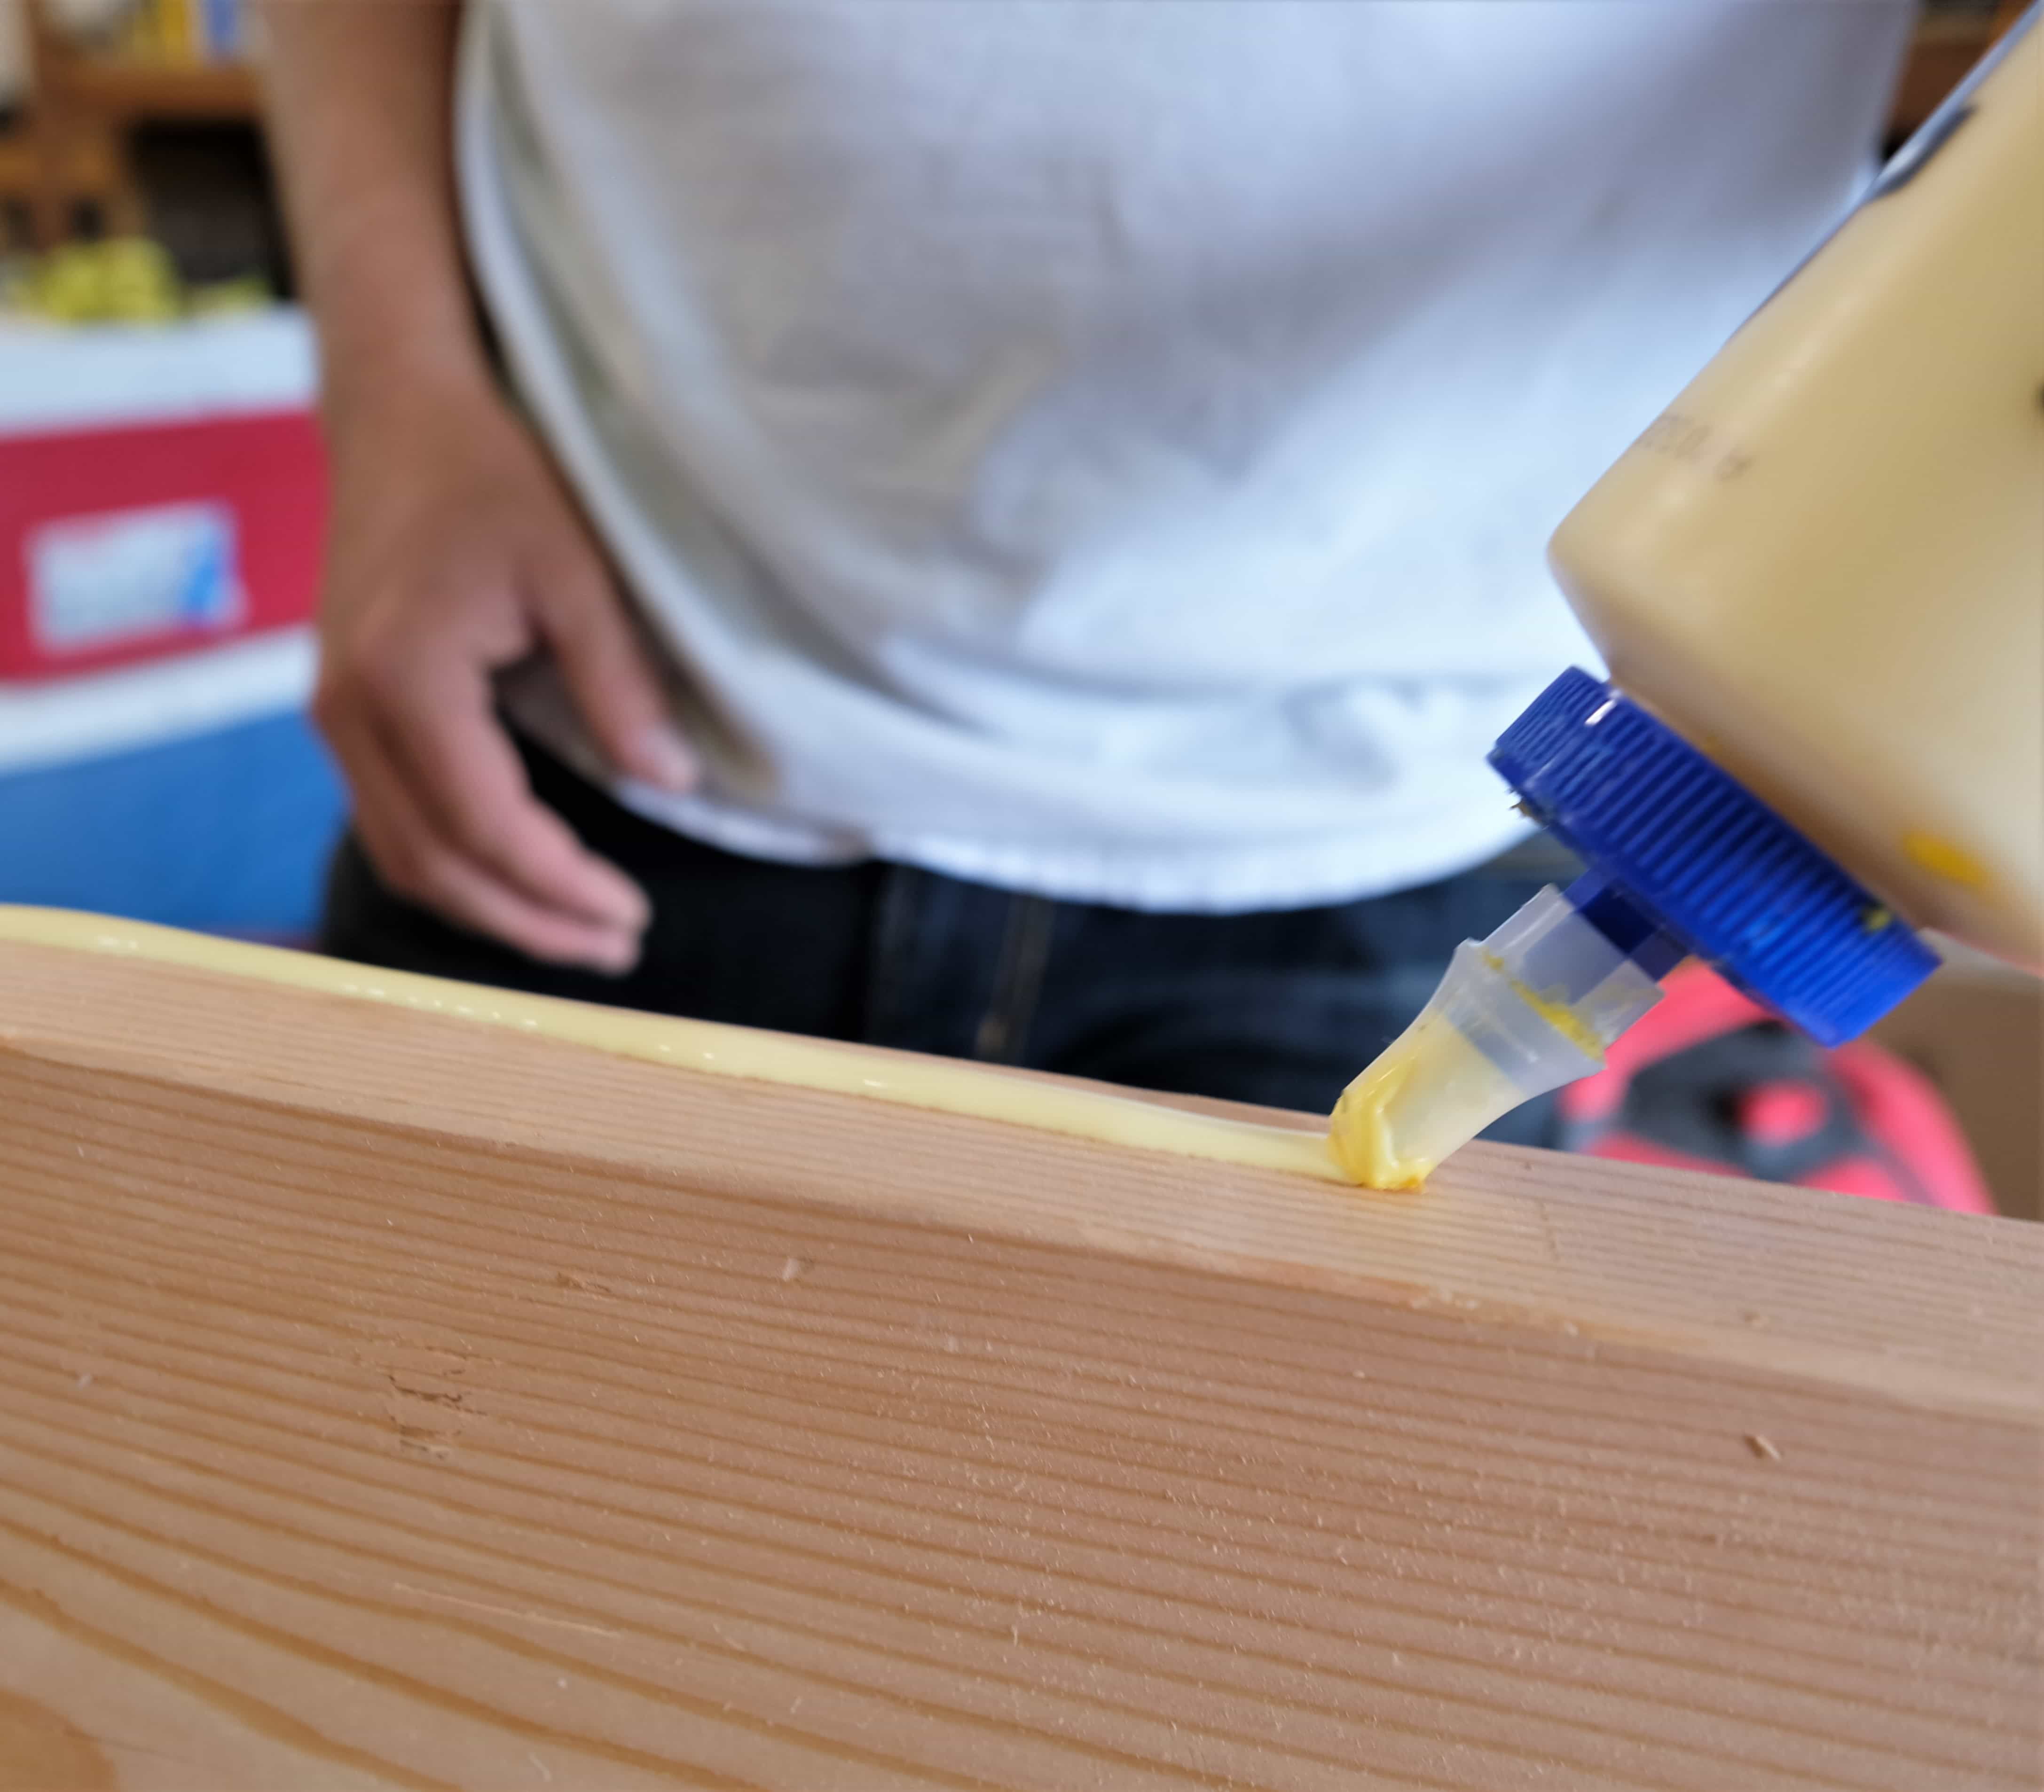 Gluing board to build rustic coffee table